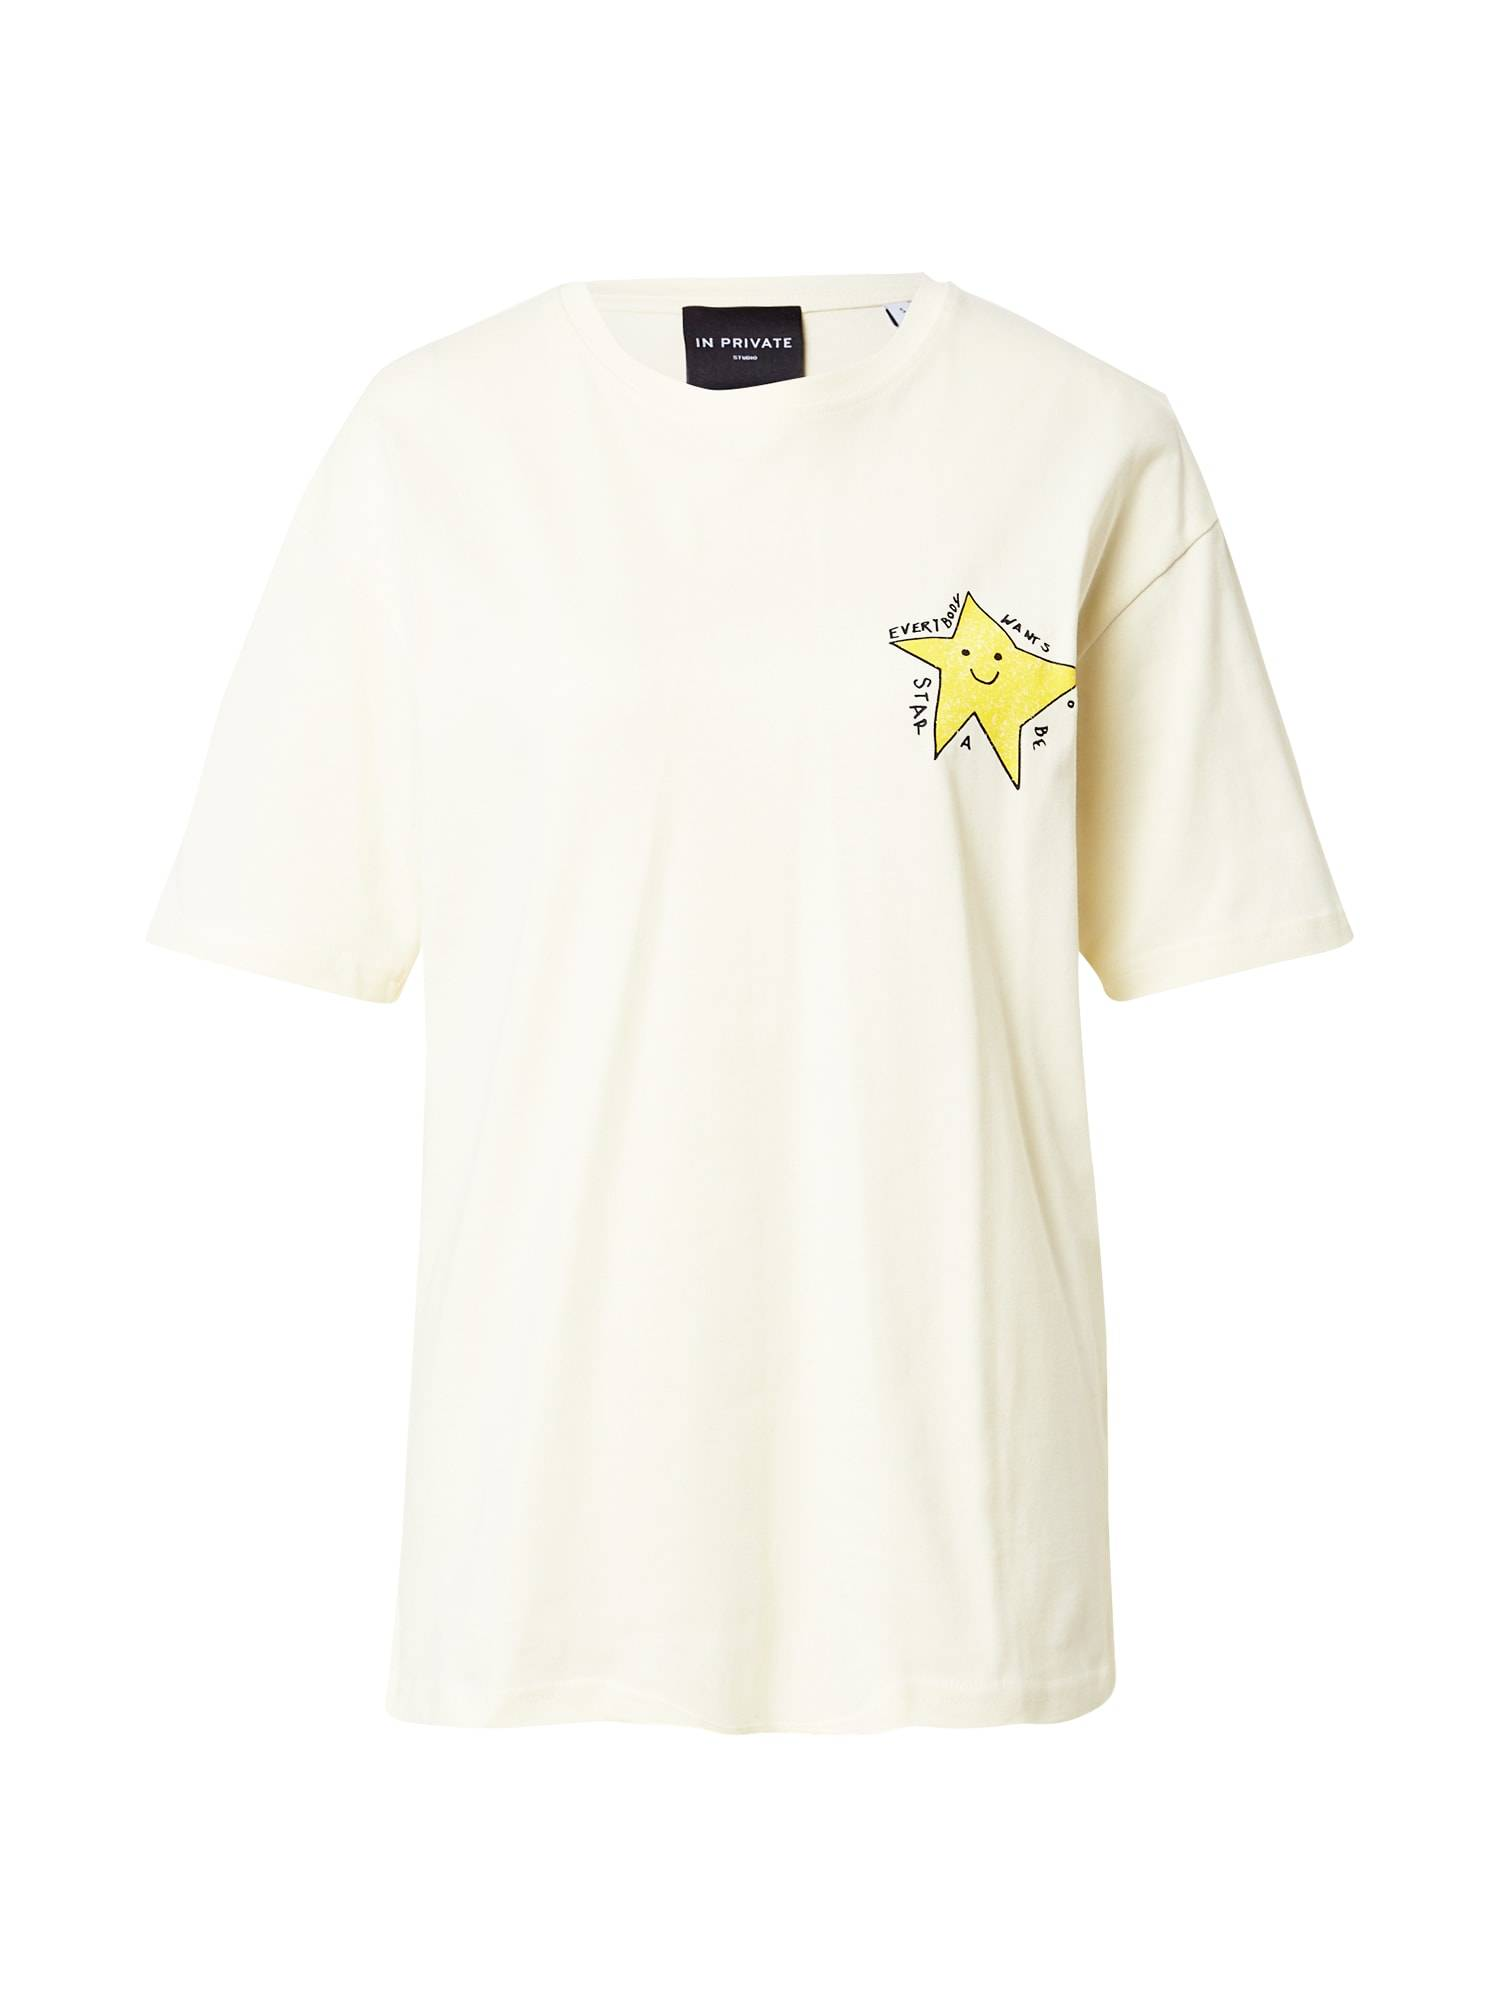 IN PRIVATE Studio T-shirt 'LONELY STAR'  - Blanc - Taille: S - female